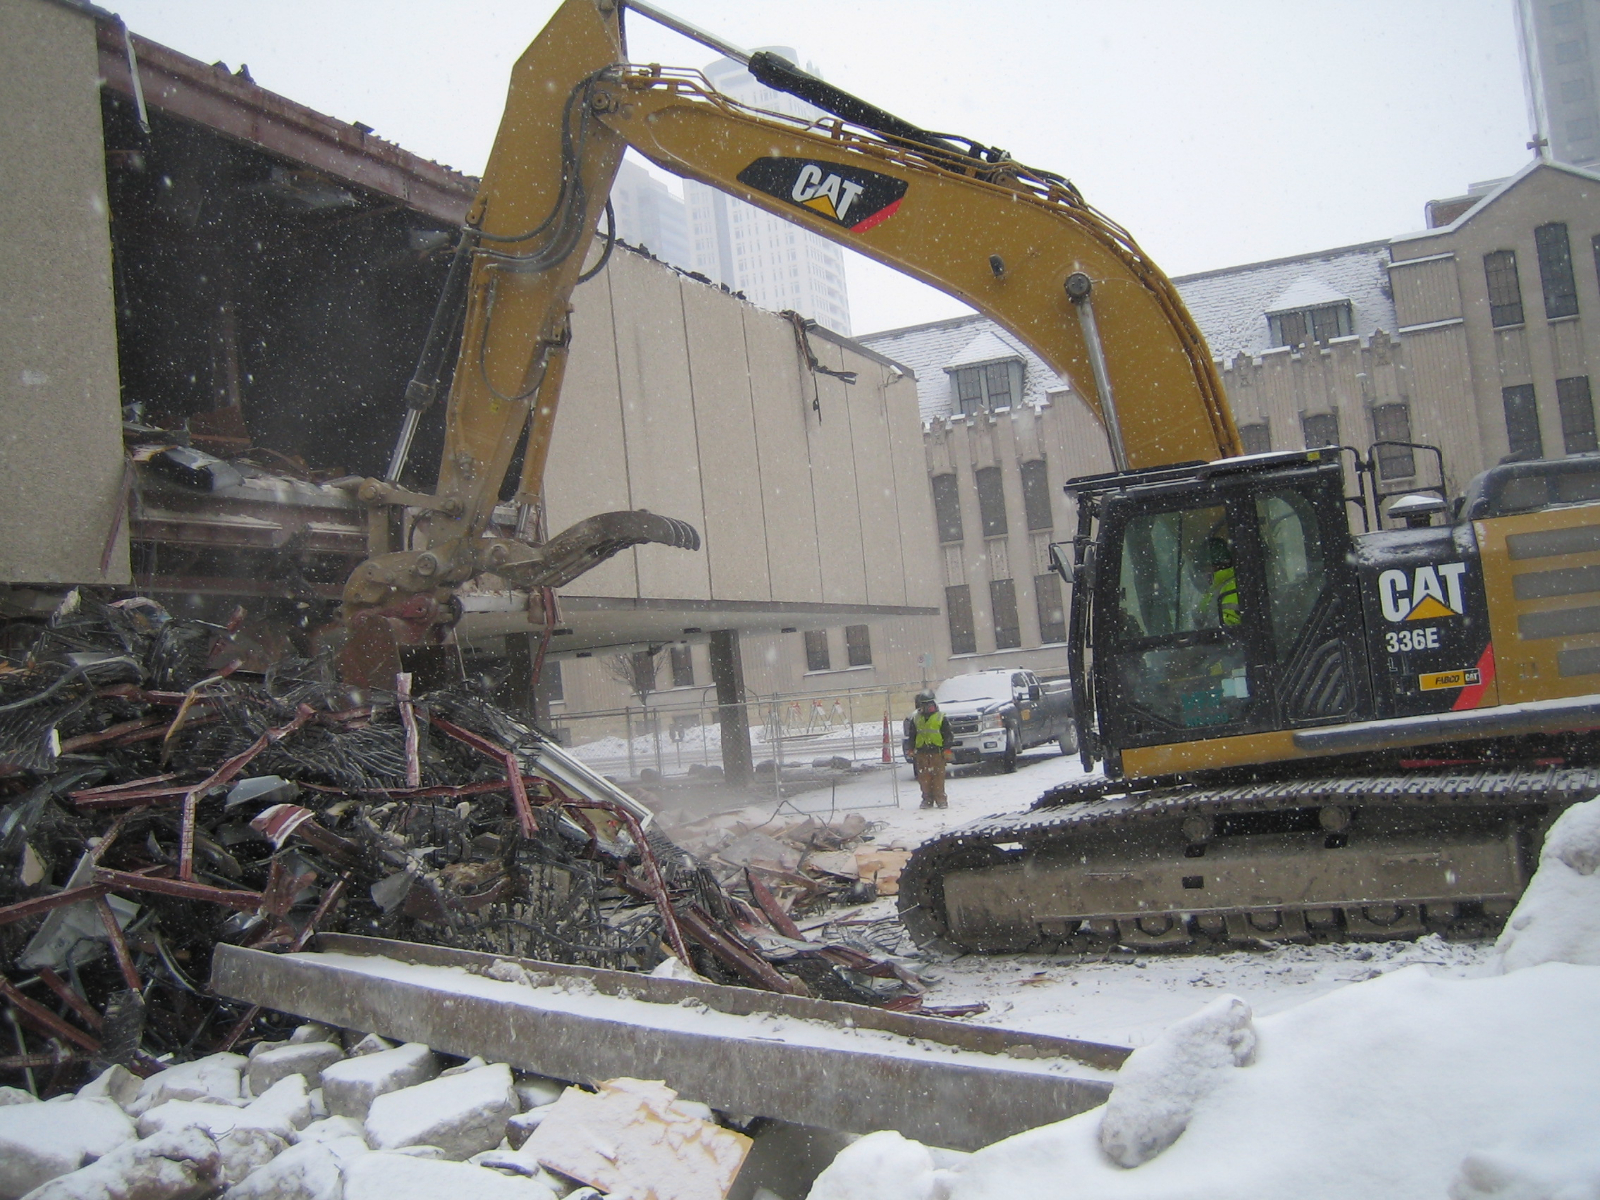 The demolition of 795 N. Van Buren St.